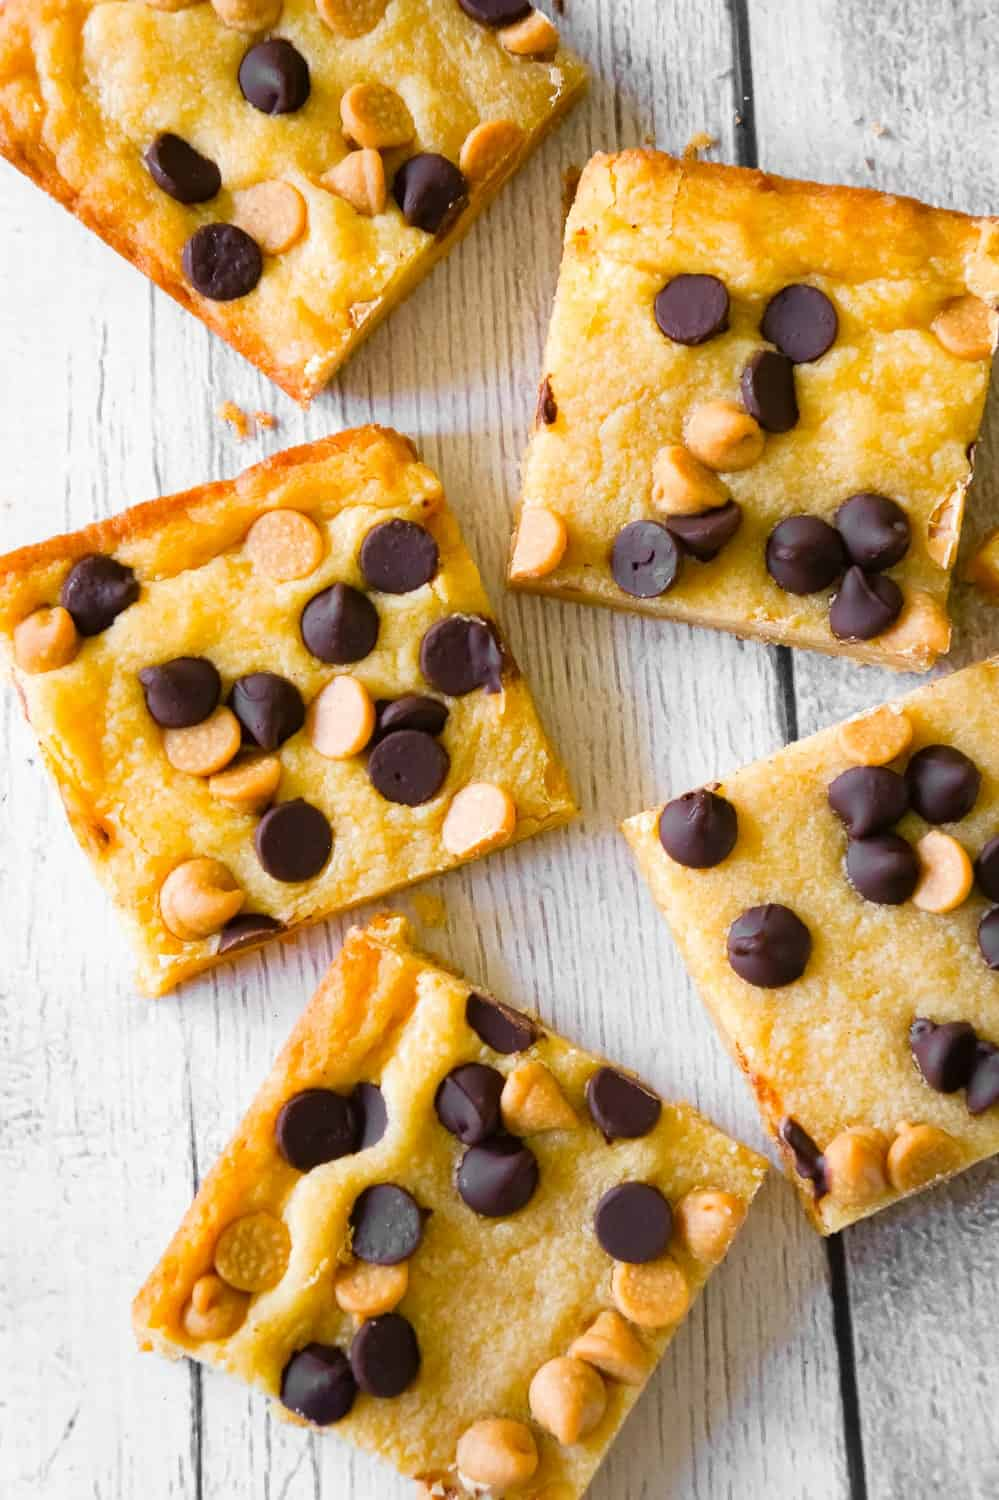 Peanut Butter Banana Pudding Sugar Cookie Bars are an easy dessert recipe using Betty Crocker sugar cookie mix, banana instant pudding mix, Reese's peanut butter baking chips and semi sweet chocolate chips.